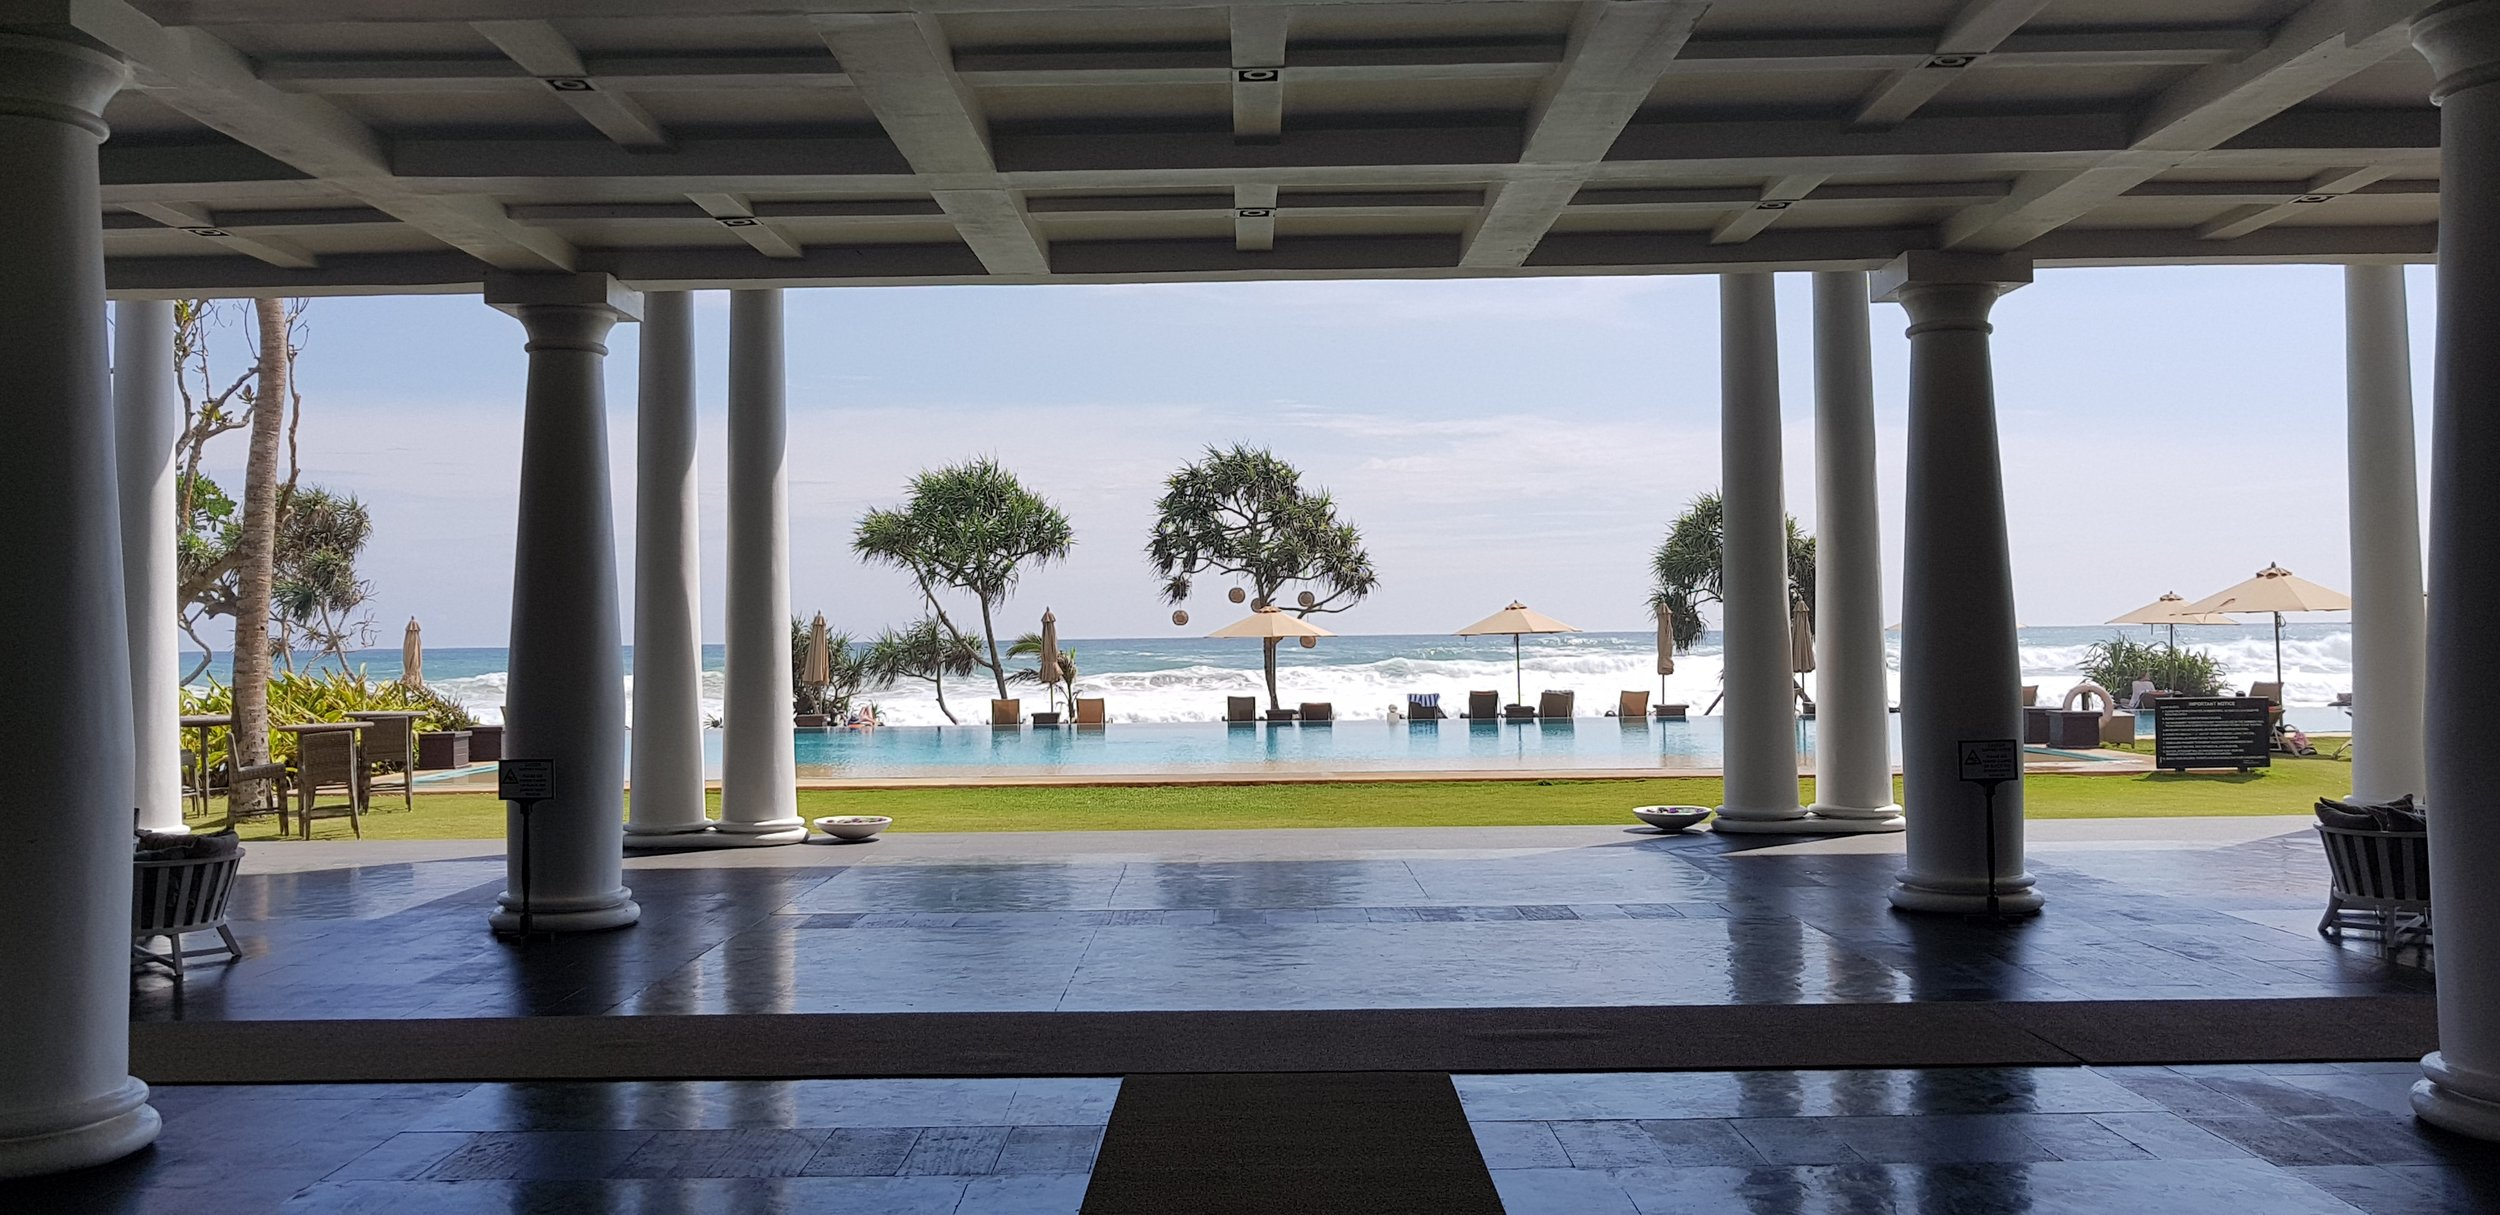 invite-to-paradise-sri-lanka-holiday-honeymoon-specialists-customer-feedback-fleur-simon-minshull-the-fortress-galle-entrance.jpg